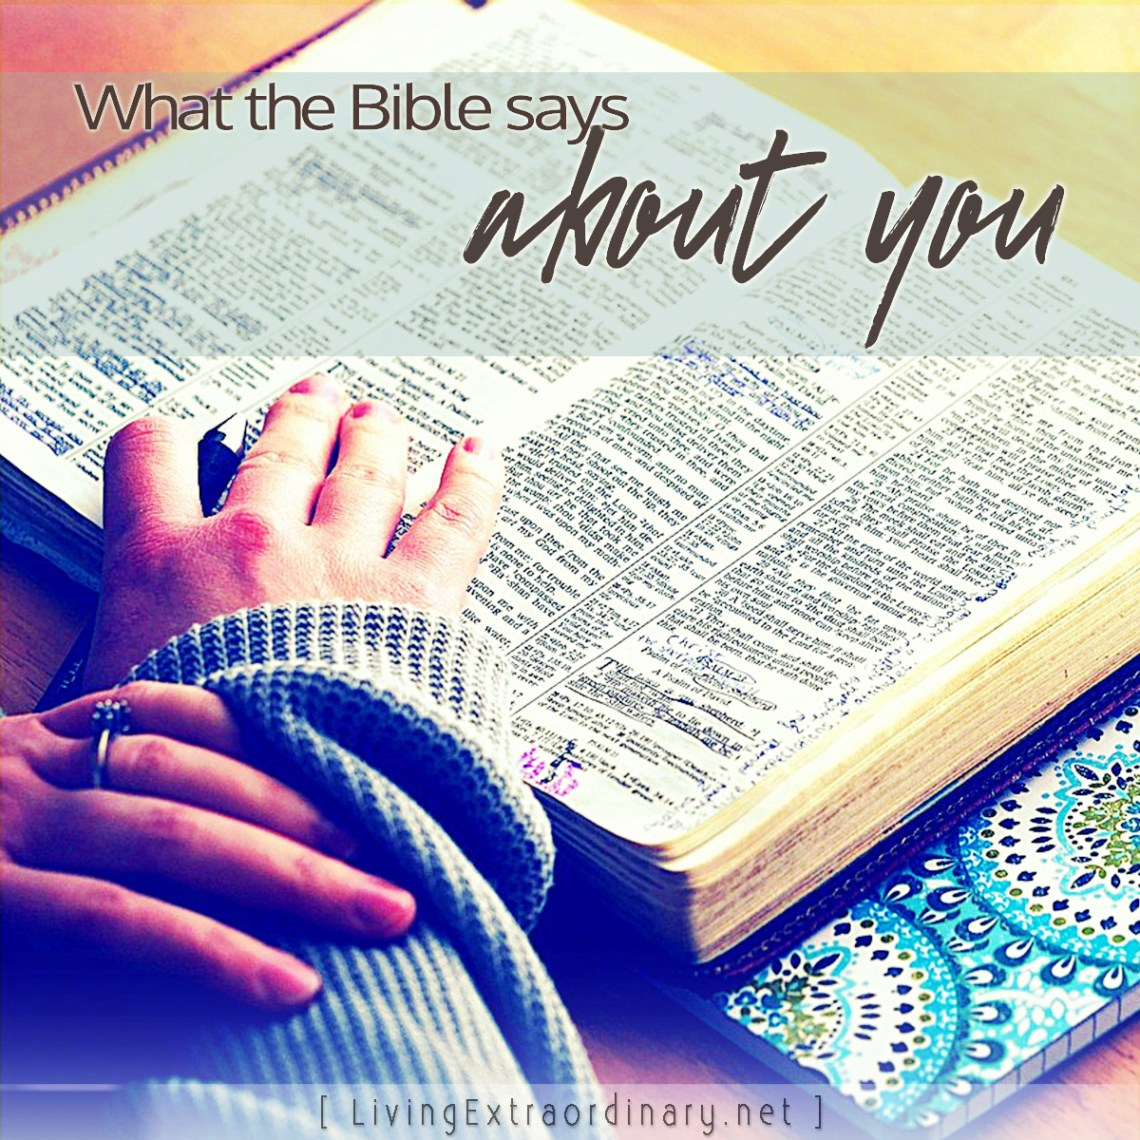 check out what the Bible says about you